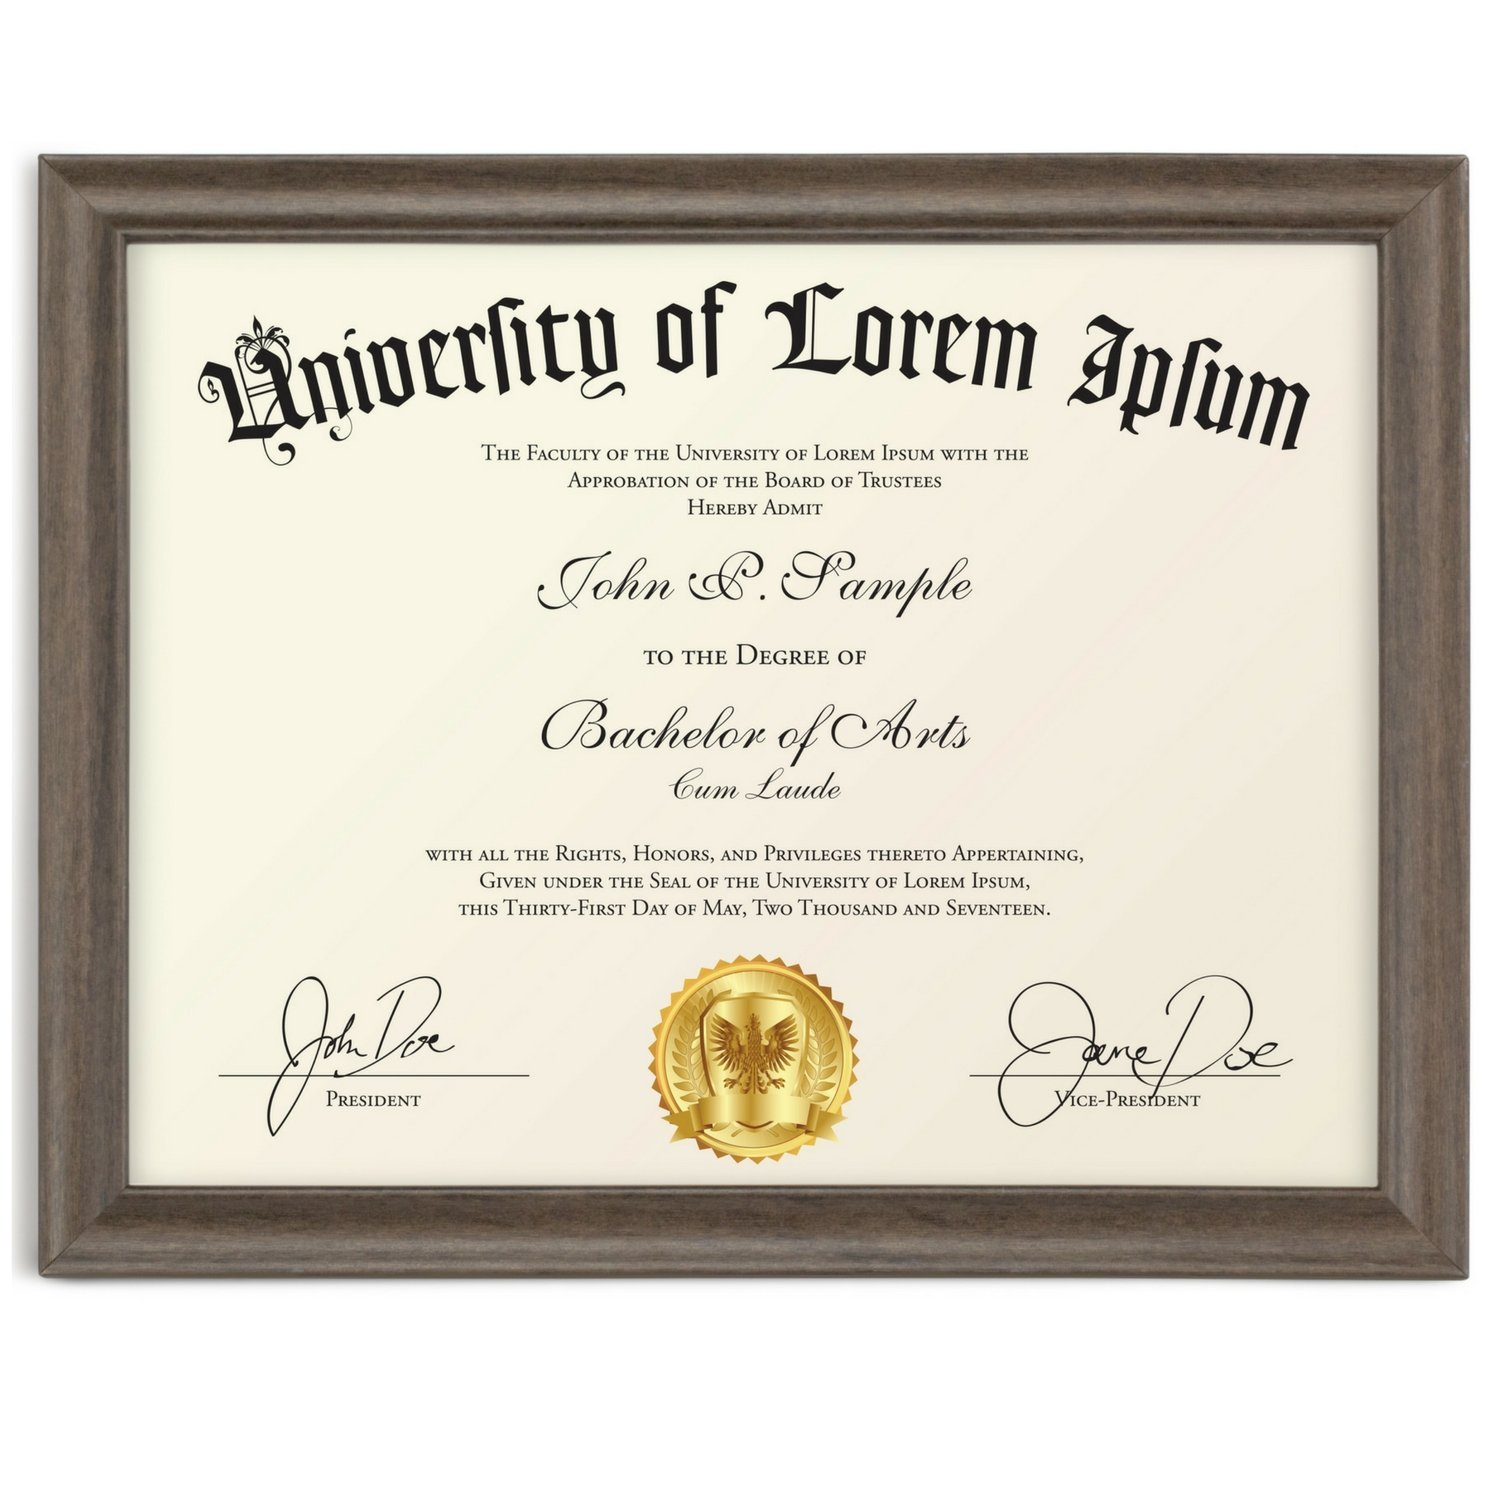 Icona Bay Certificate Holder Document Frame (Hickory Brown, 8.5 x 11 Inch, 1-Pack), Business License Permit, College Degree Diploma Frame for Standard Letter Size Paper, Wood Finish